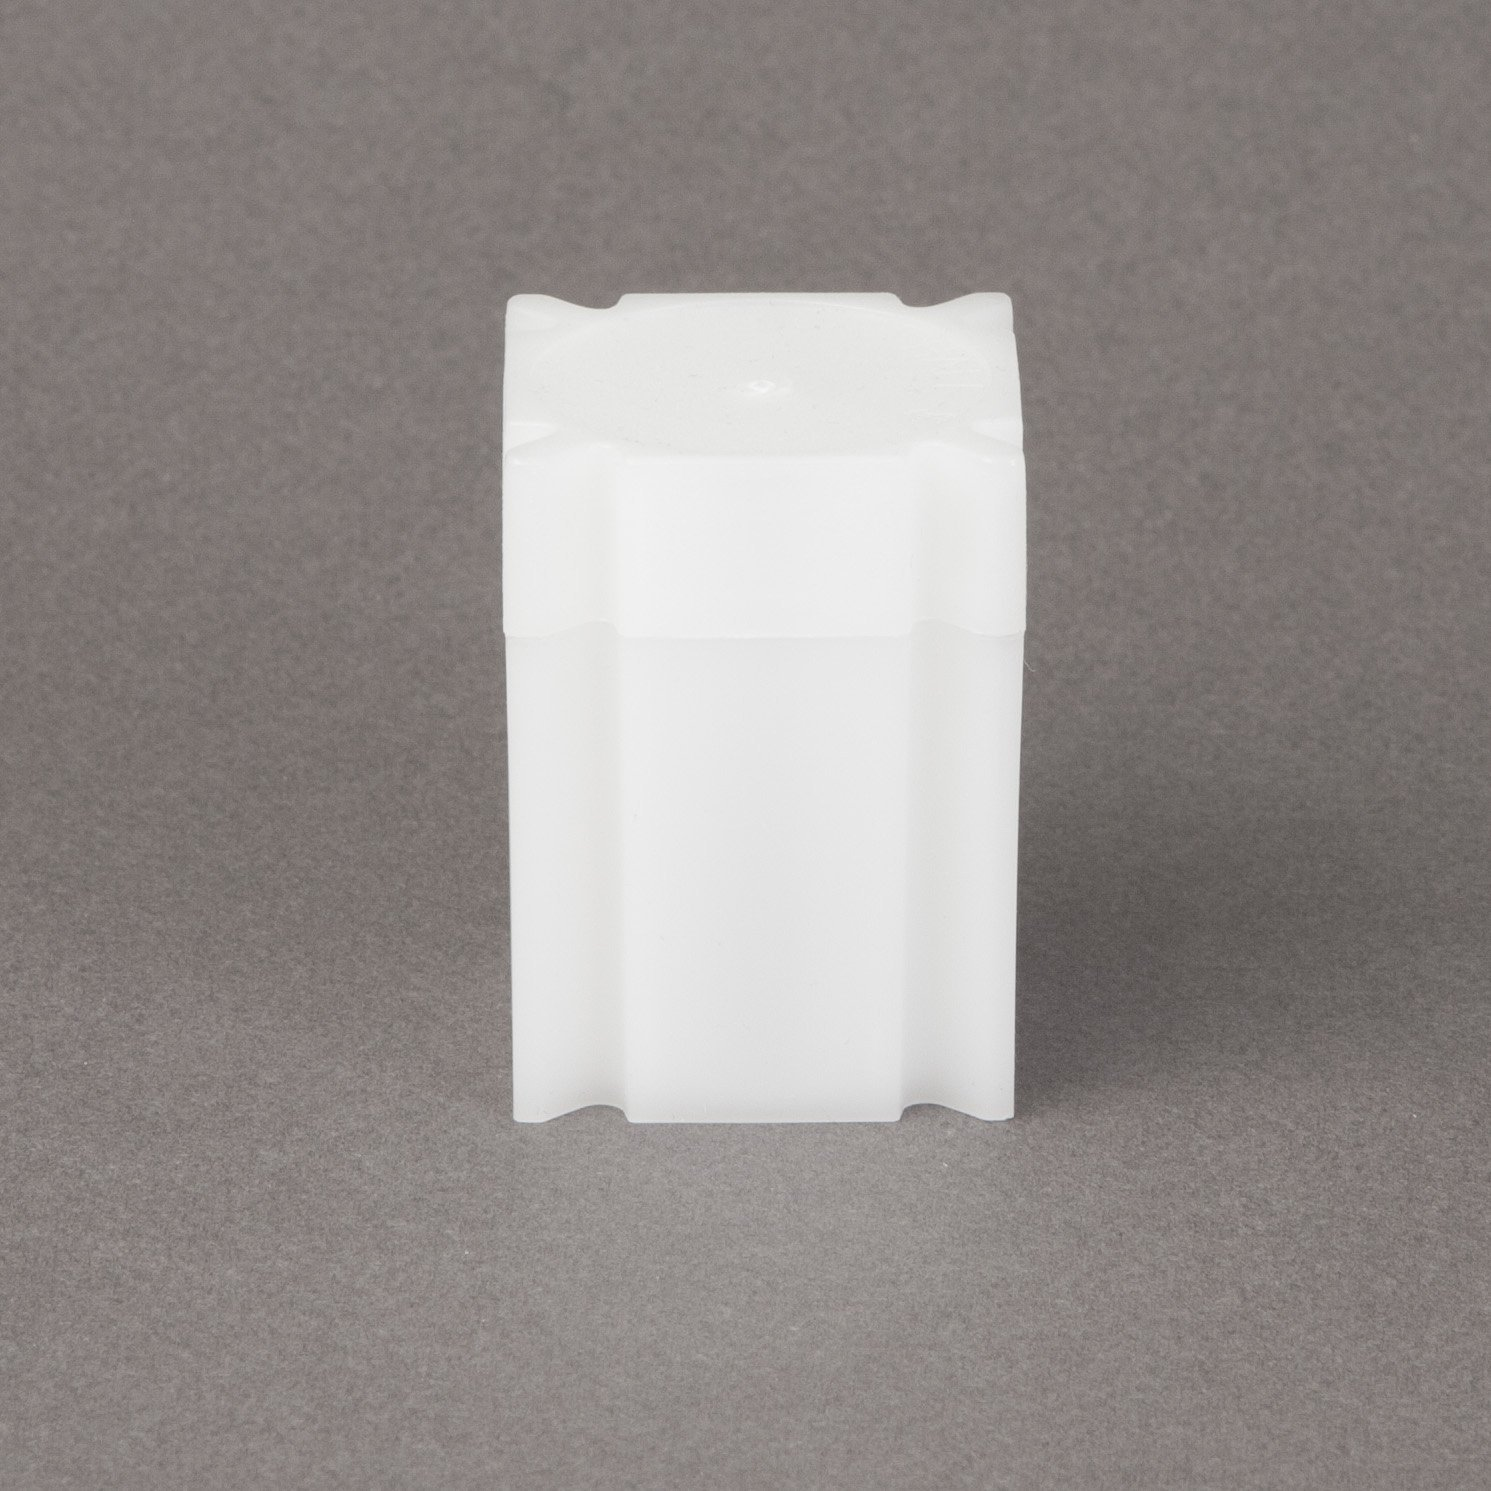 (20) Coinsafe Brand Square White Plastic (Half Dollar) Size Coin Storage Tube Holders